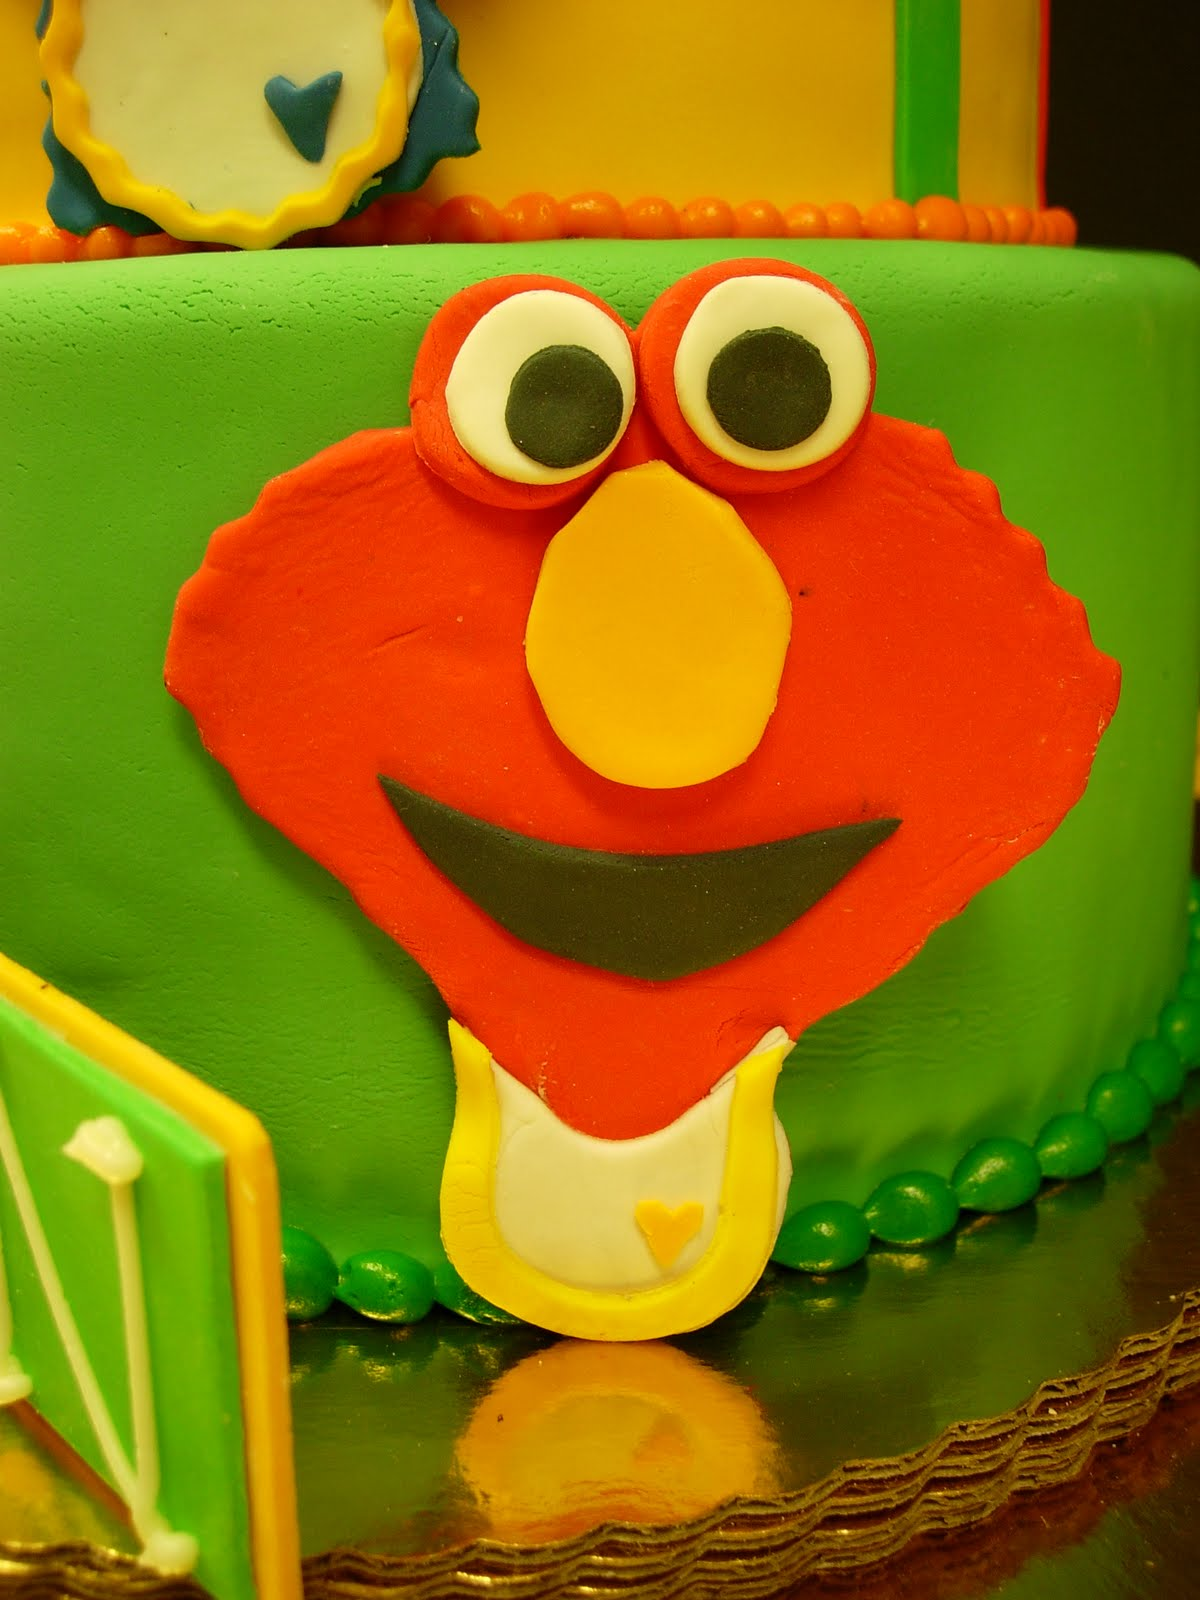 Artisan Bake Shop First Birthday Sesame Street Cake